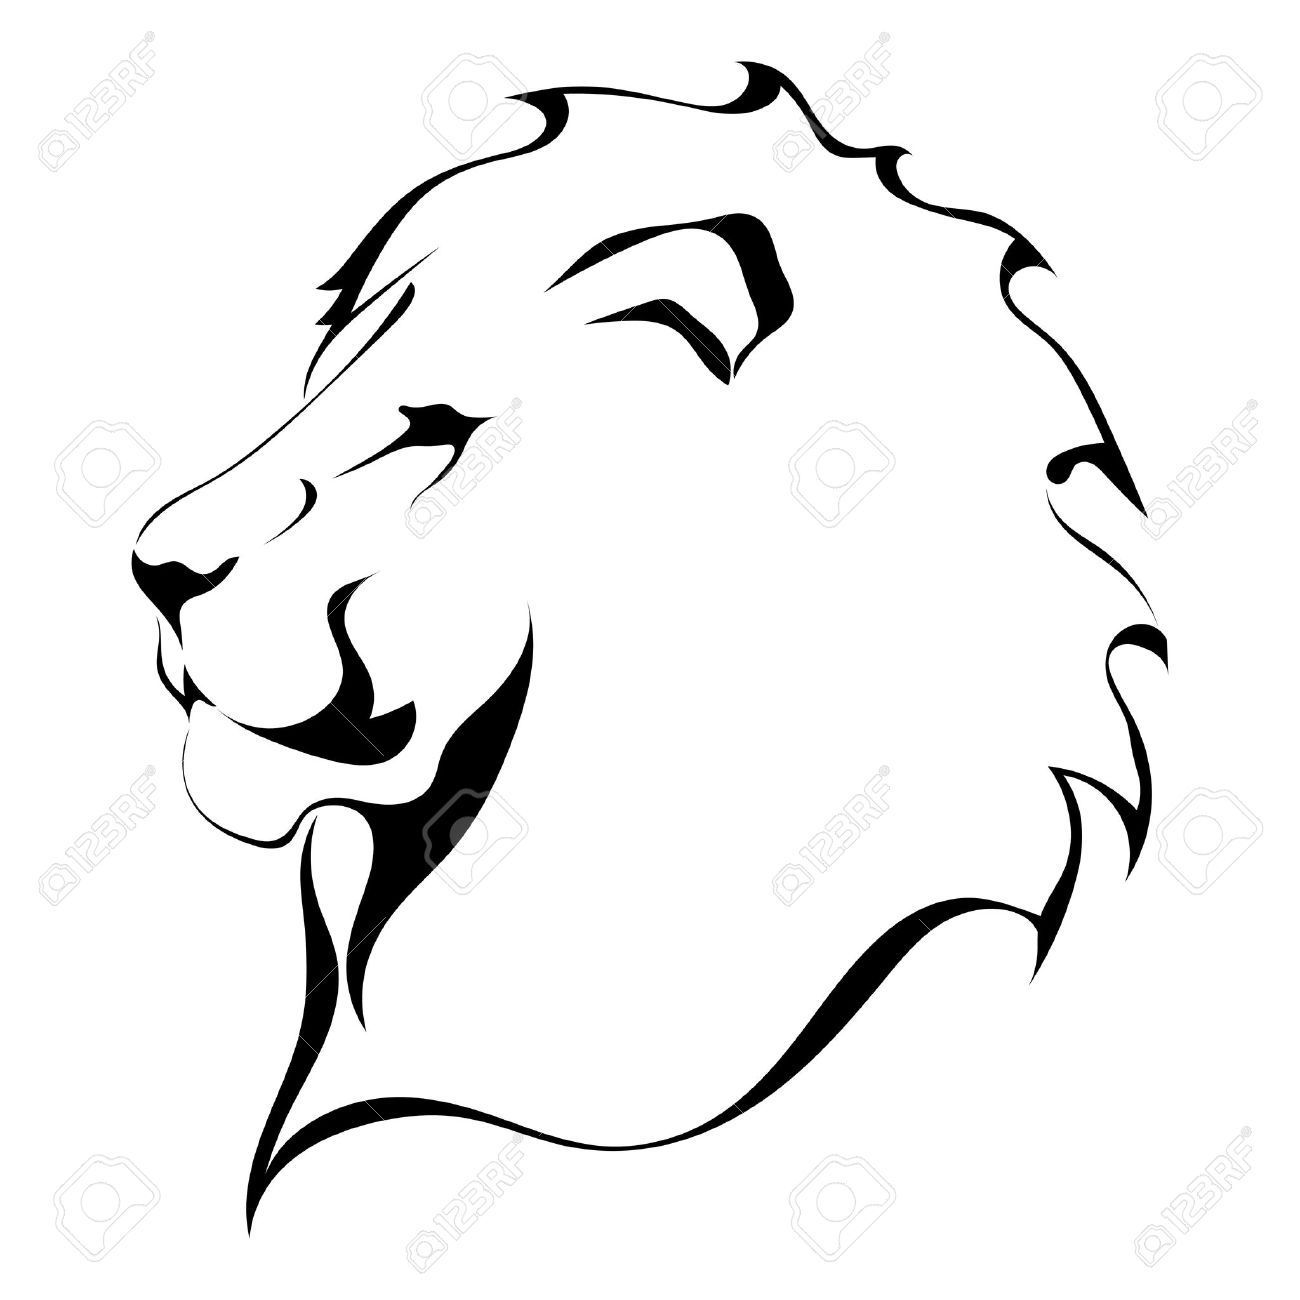 Lion Outline Images : Lion outline and coloring image.